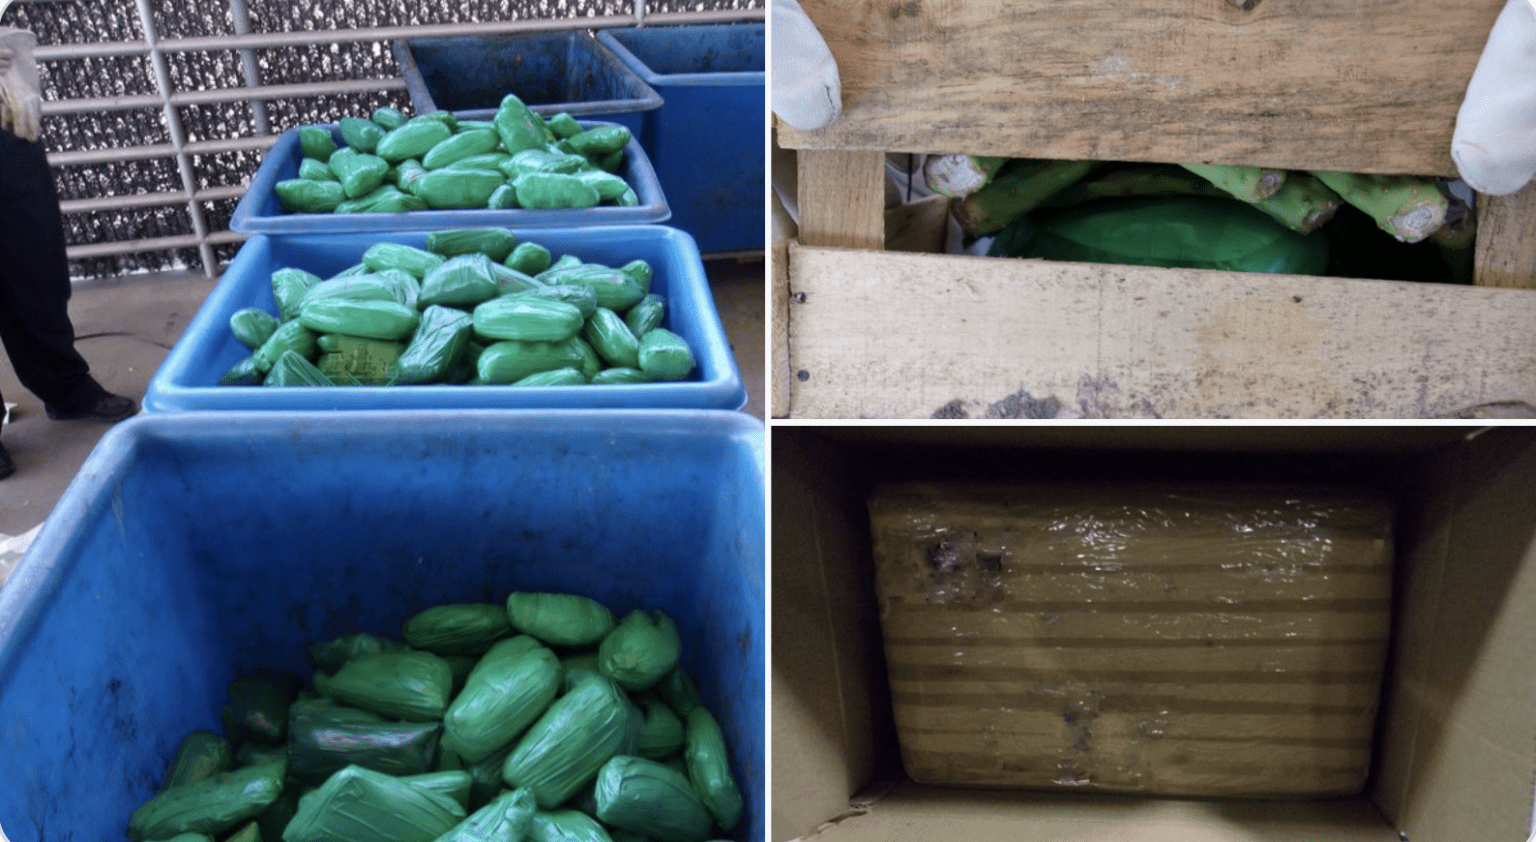 What border crisis? Feds: 668 lbs of meth found in cactus shipment, 15,000 lbs of marijuana in limes